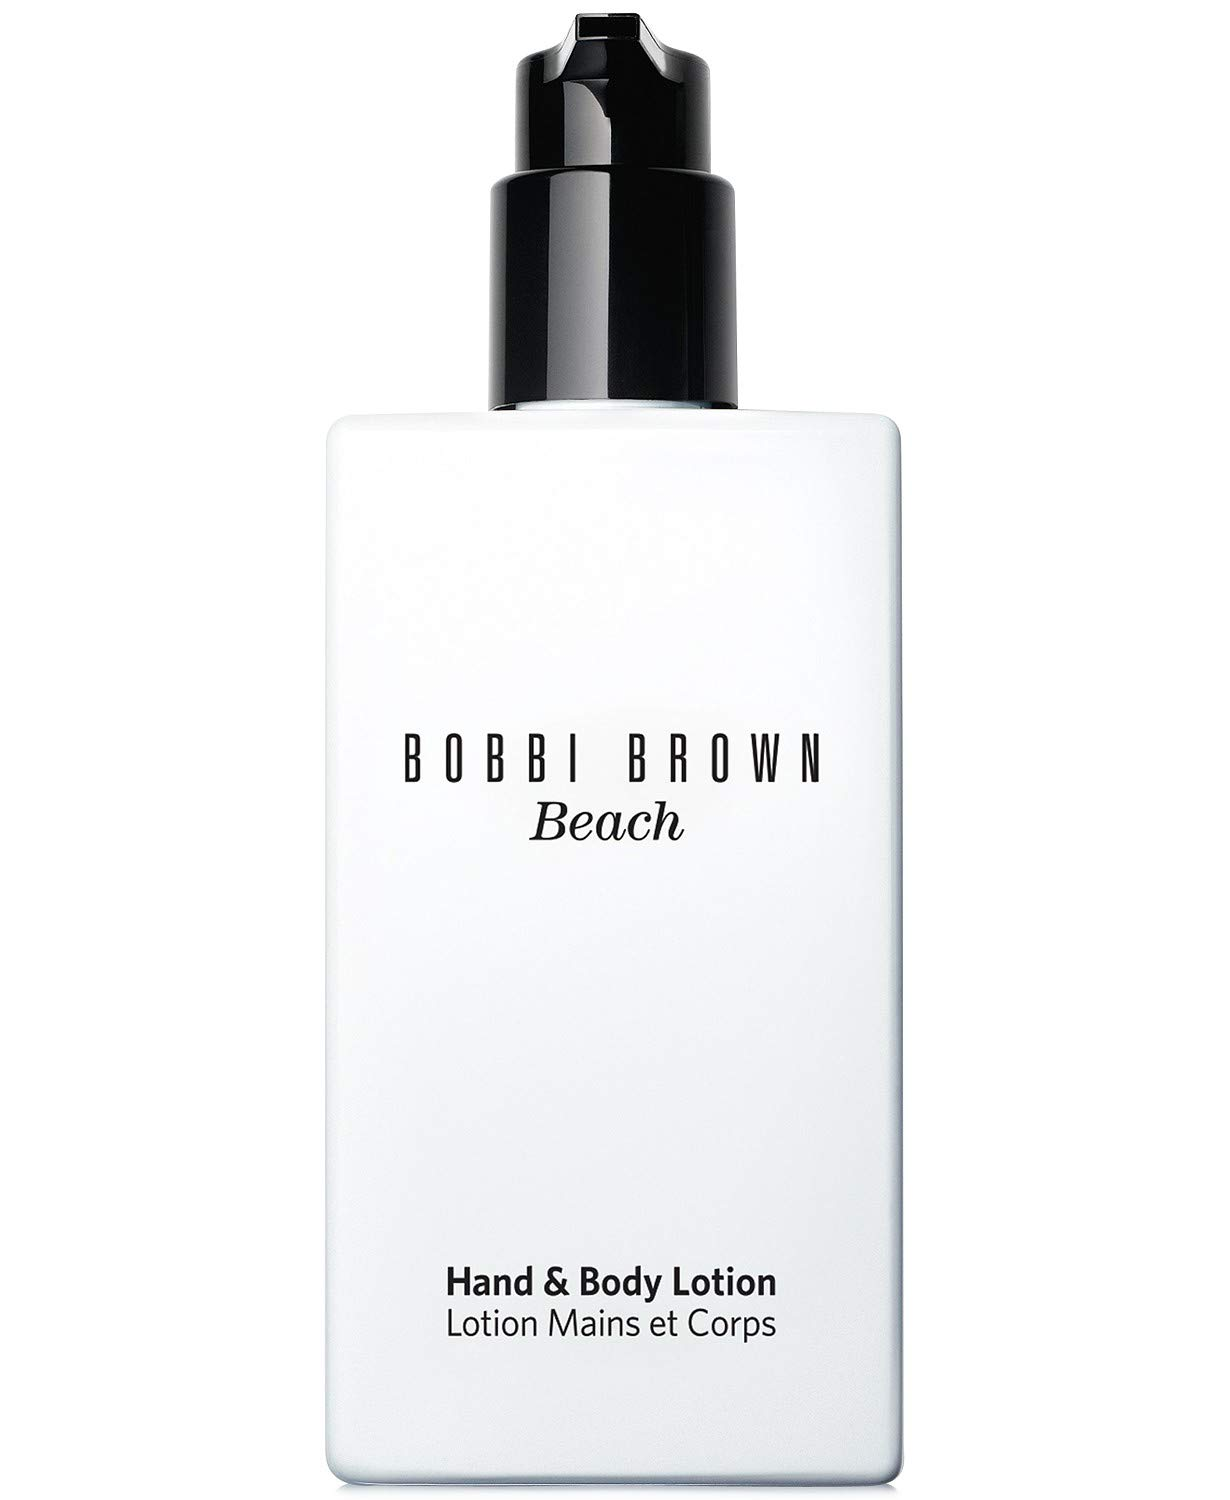 Bobbi Brown Beach Body Lotion - Bobbi Brown Beach Body Lotion, 6.7 Oz